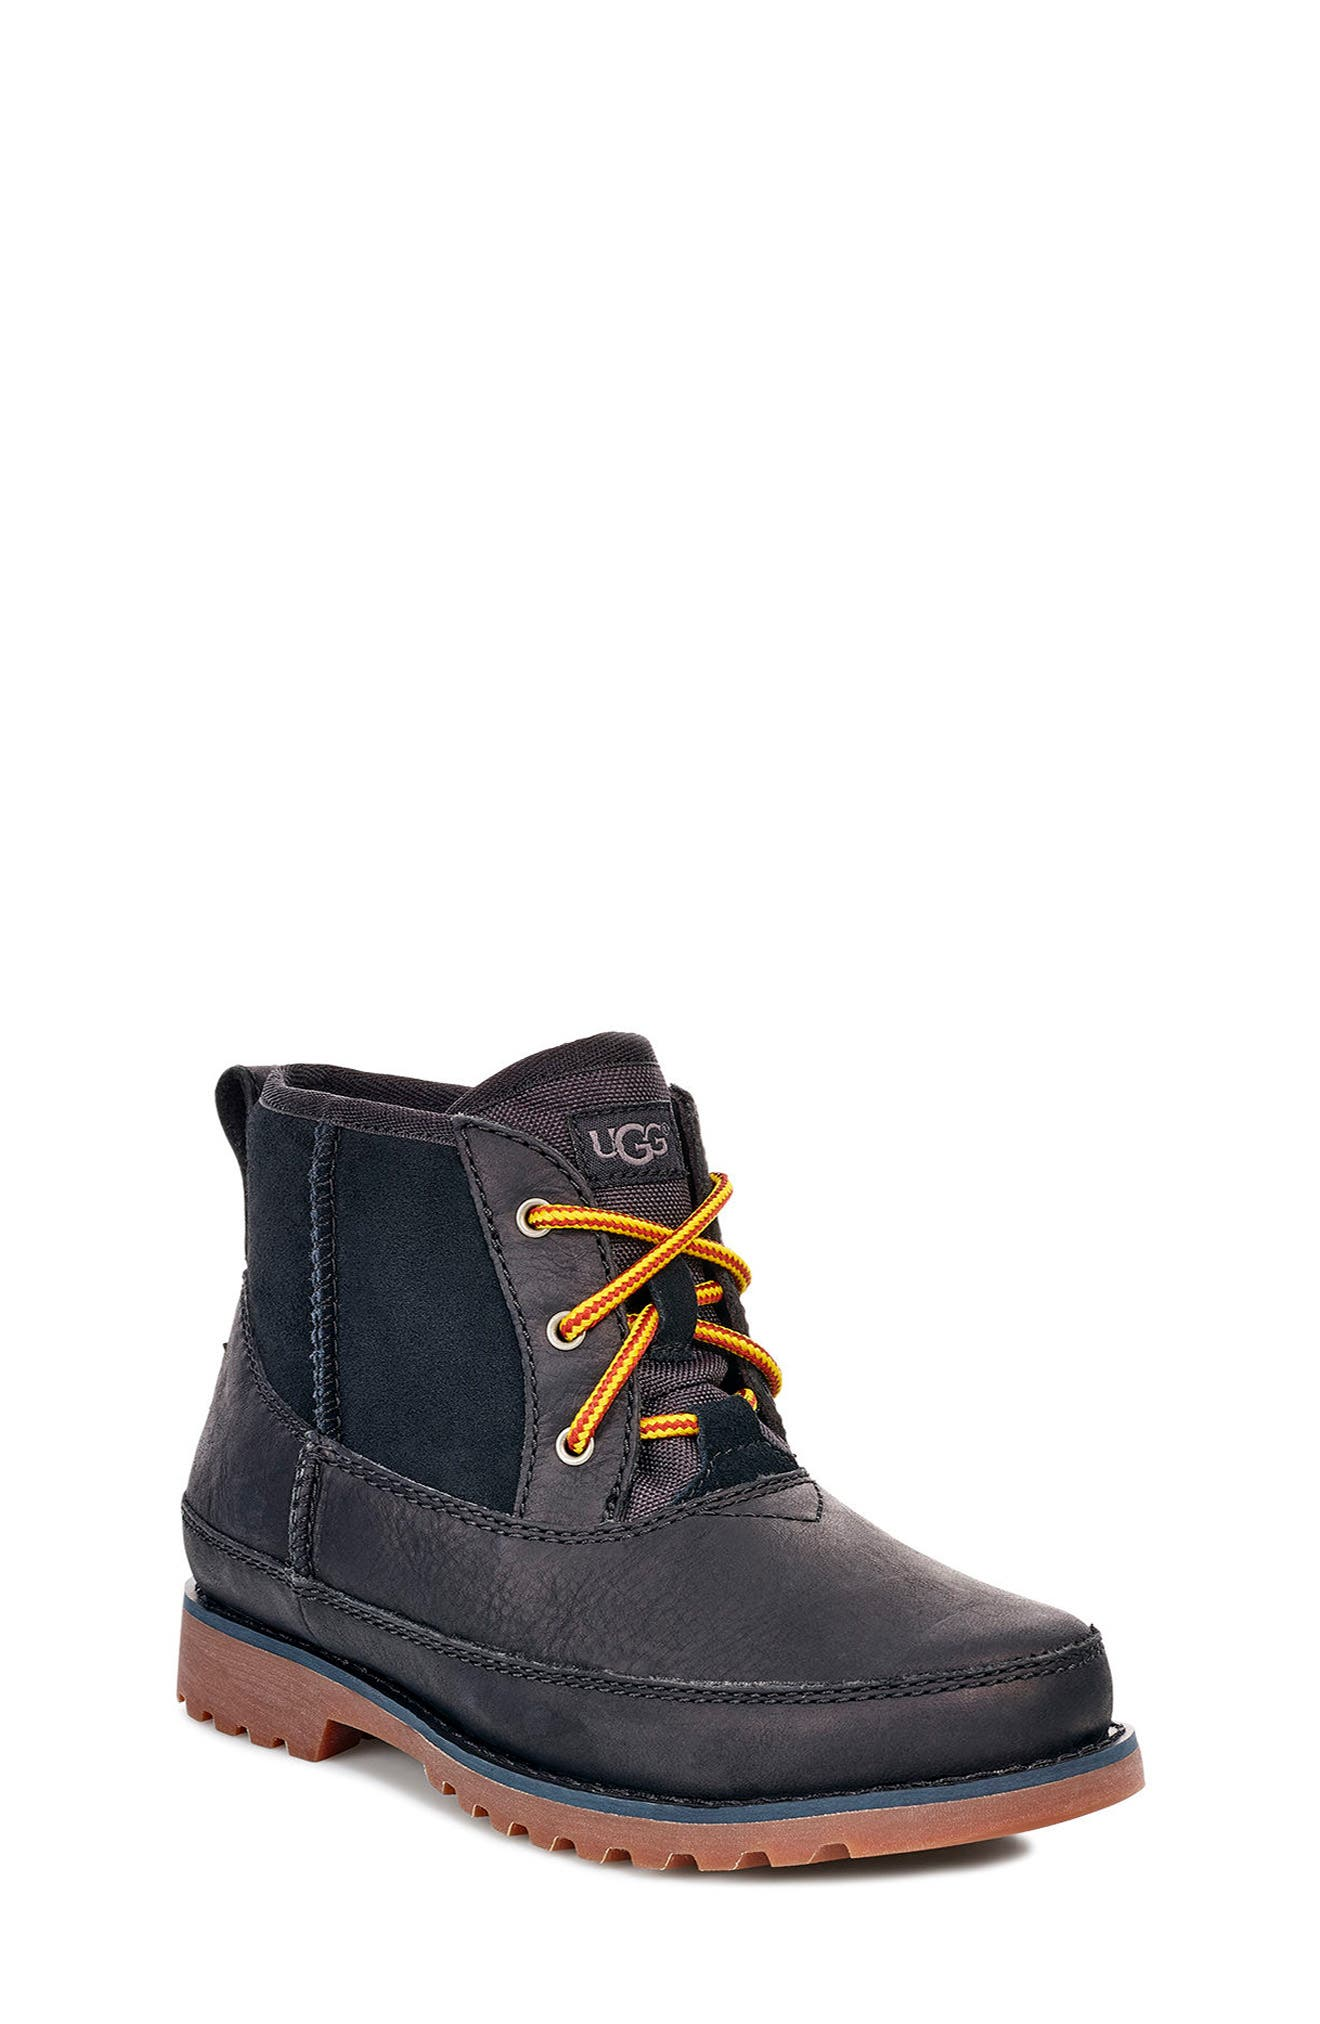 UGG<SUP>®</SUP>, Bradley Waterproof Boot, Main thumbnail 1, color, BLACK